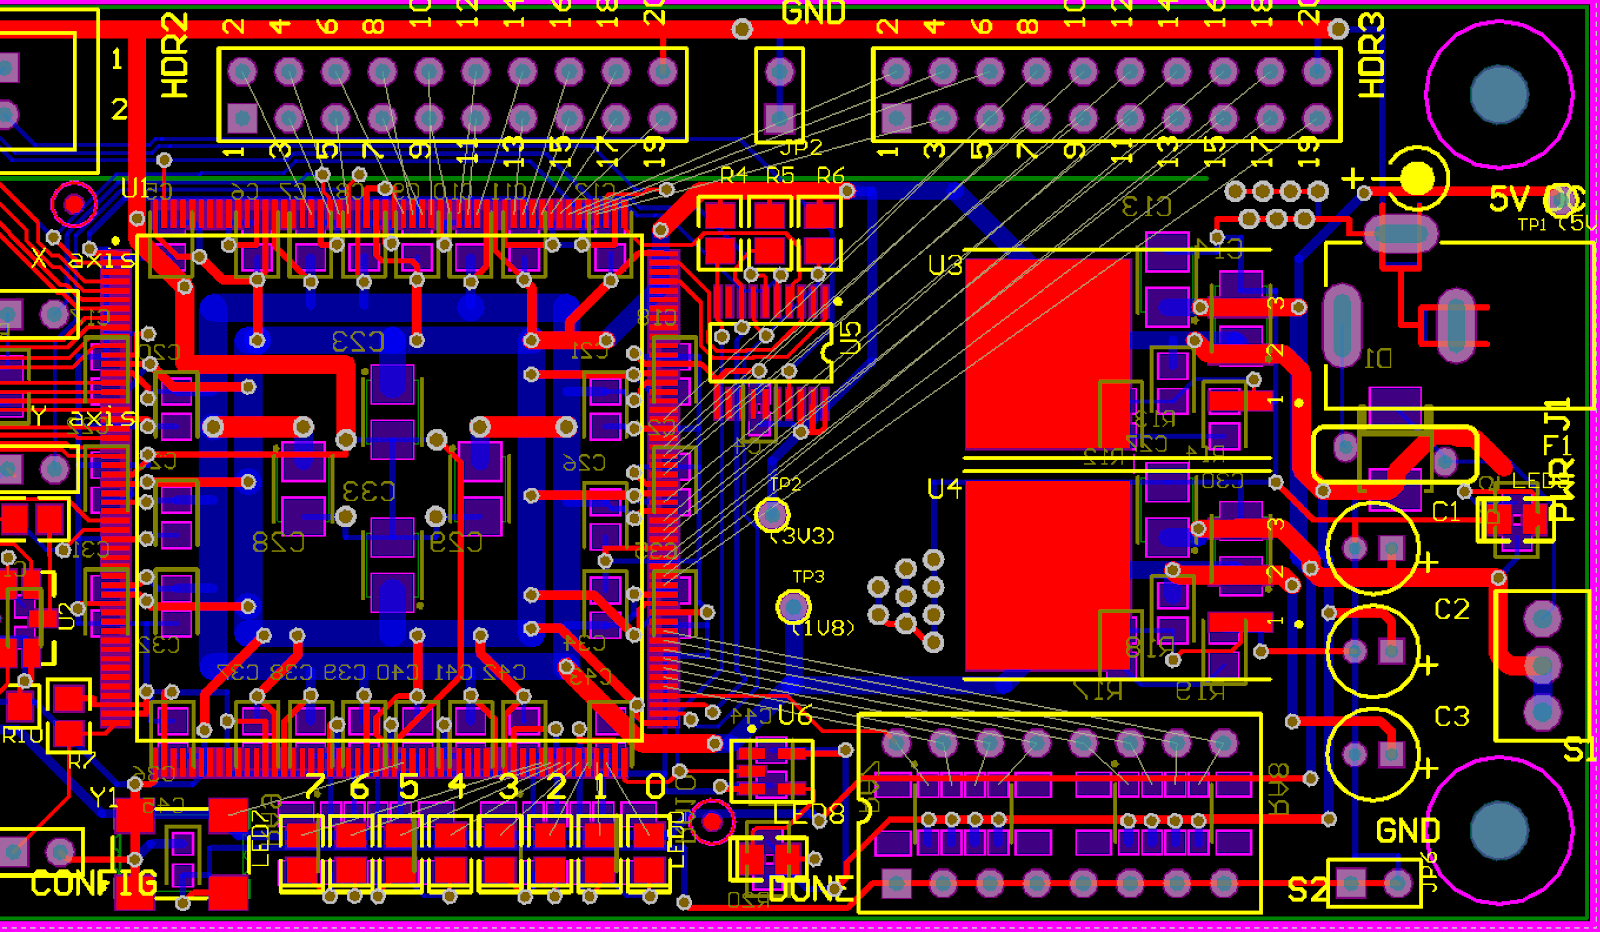 pcb-autorouter-before